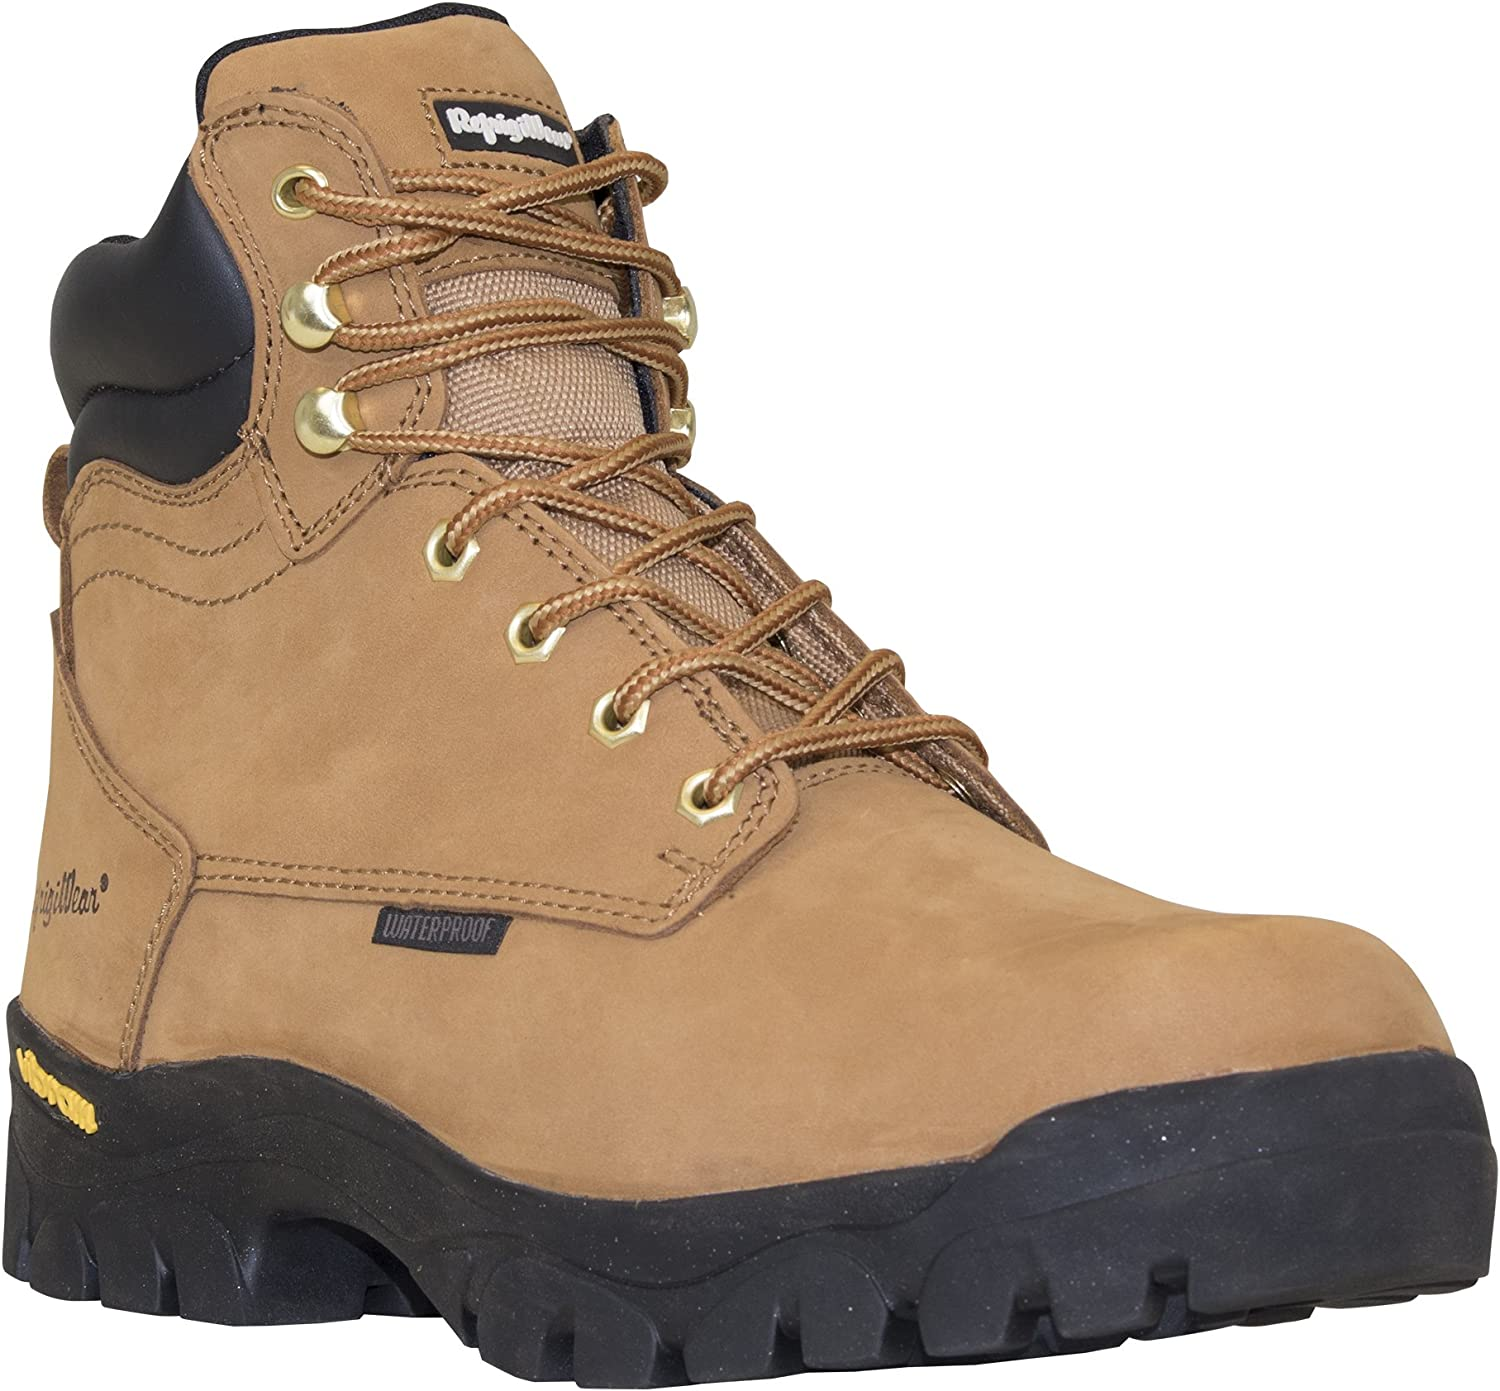 RefrigiWear Men's Ice Logger Warm Insulated Waterproof Tan Leather Work Boots